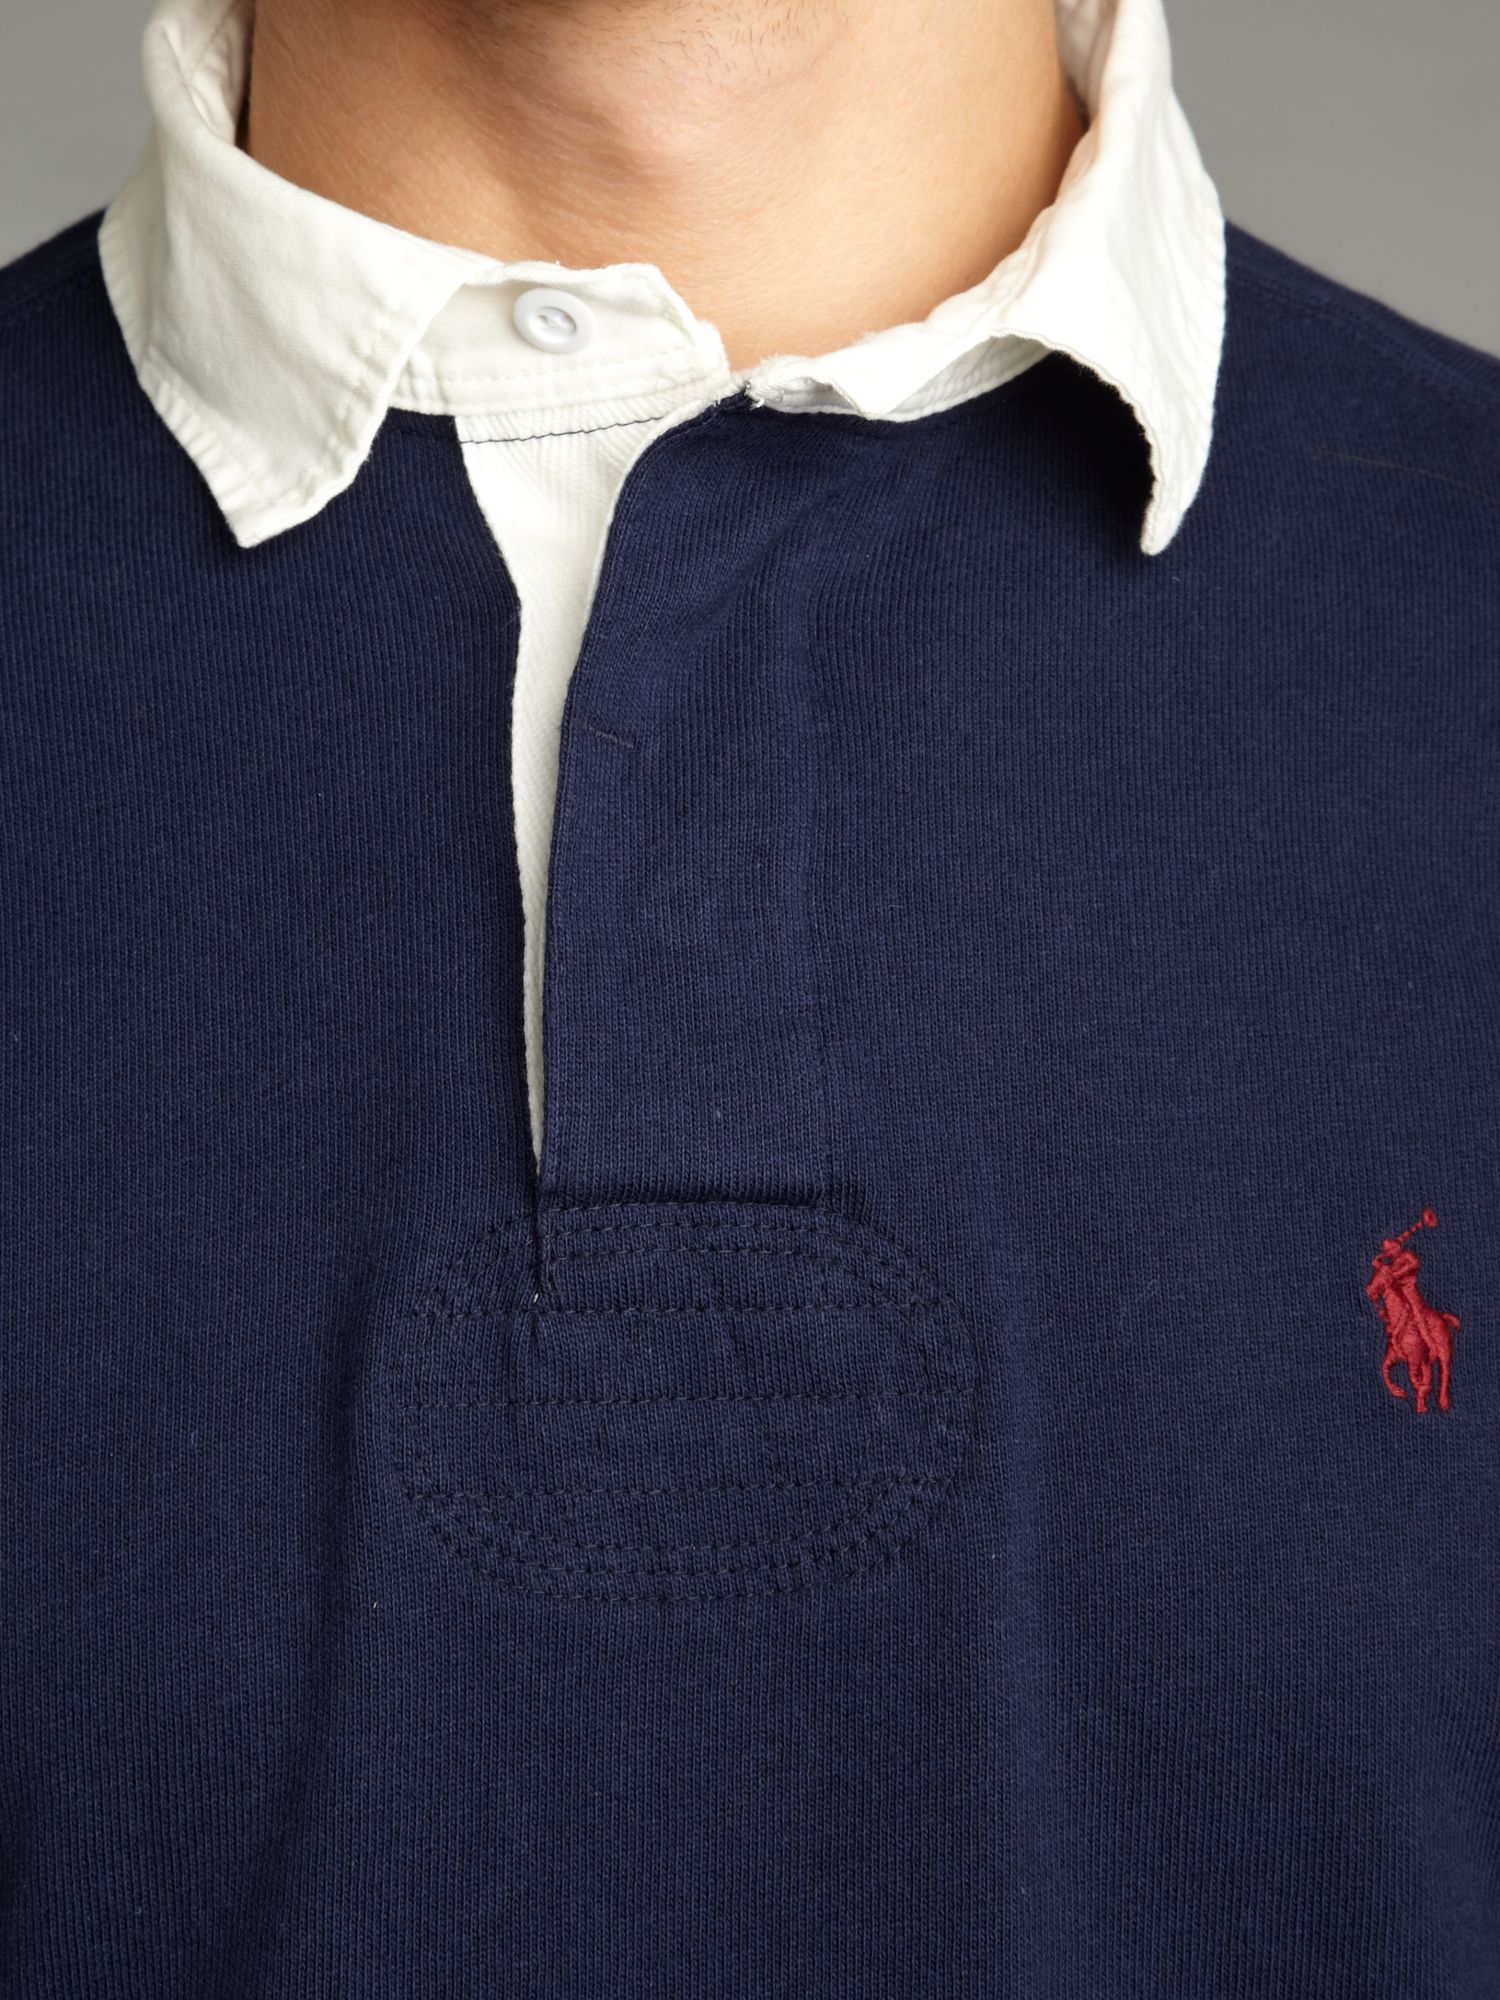 navy blue ralph lauren shoes cheap ralph lauren rugby tops